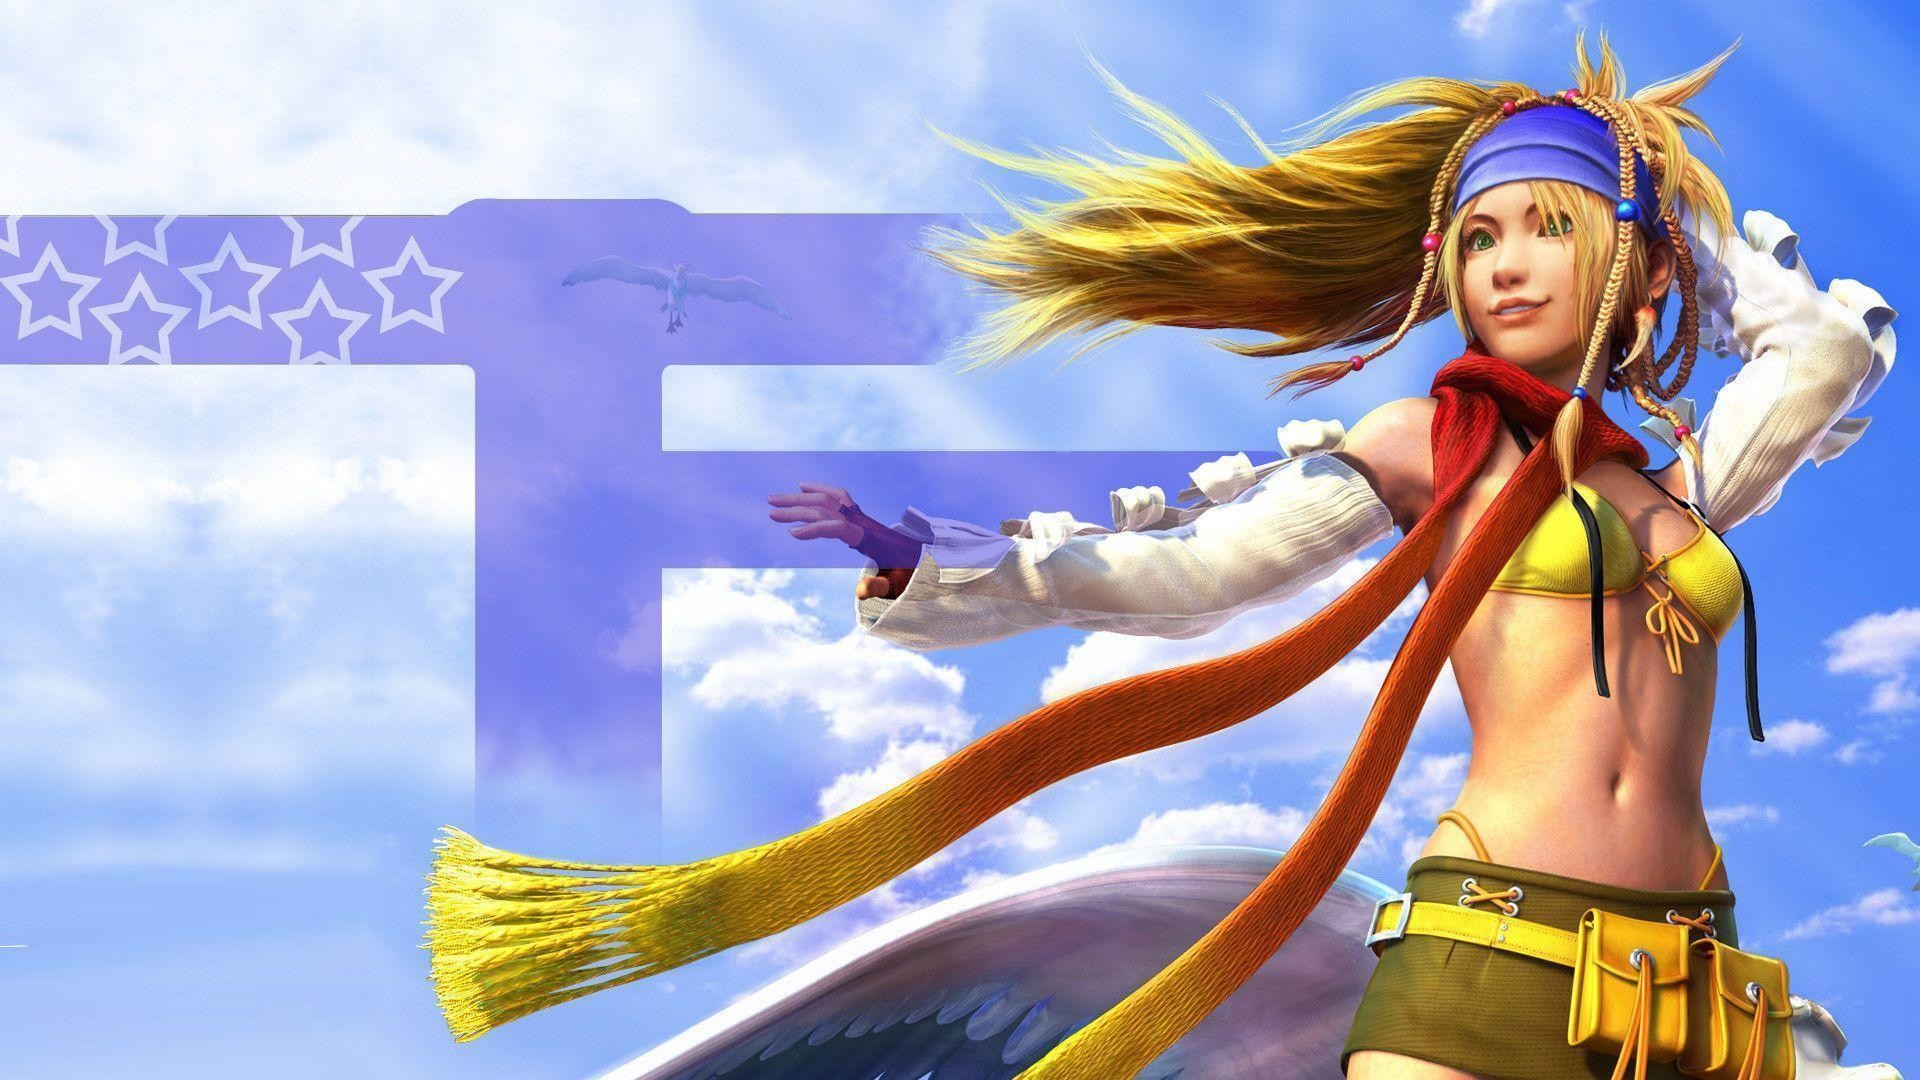 Final Fantasy x/x-2 images FFX HD wallpaper and background photos .